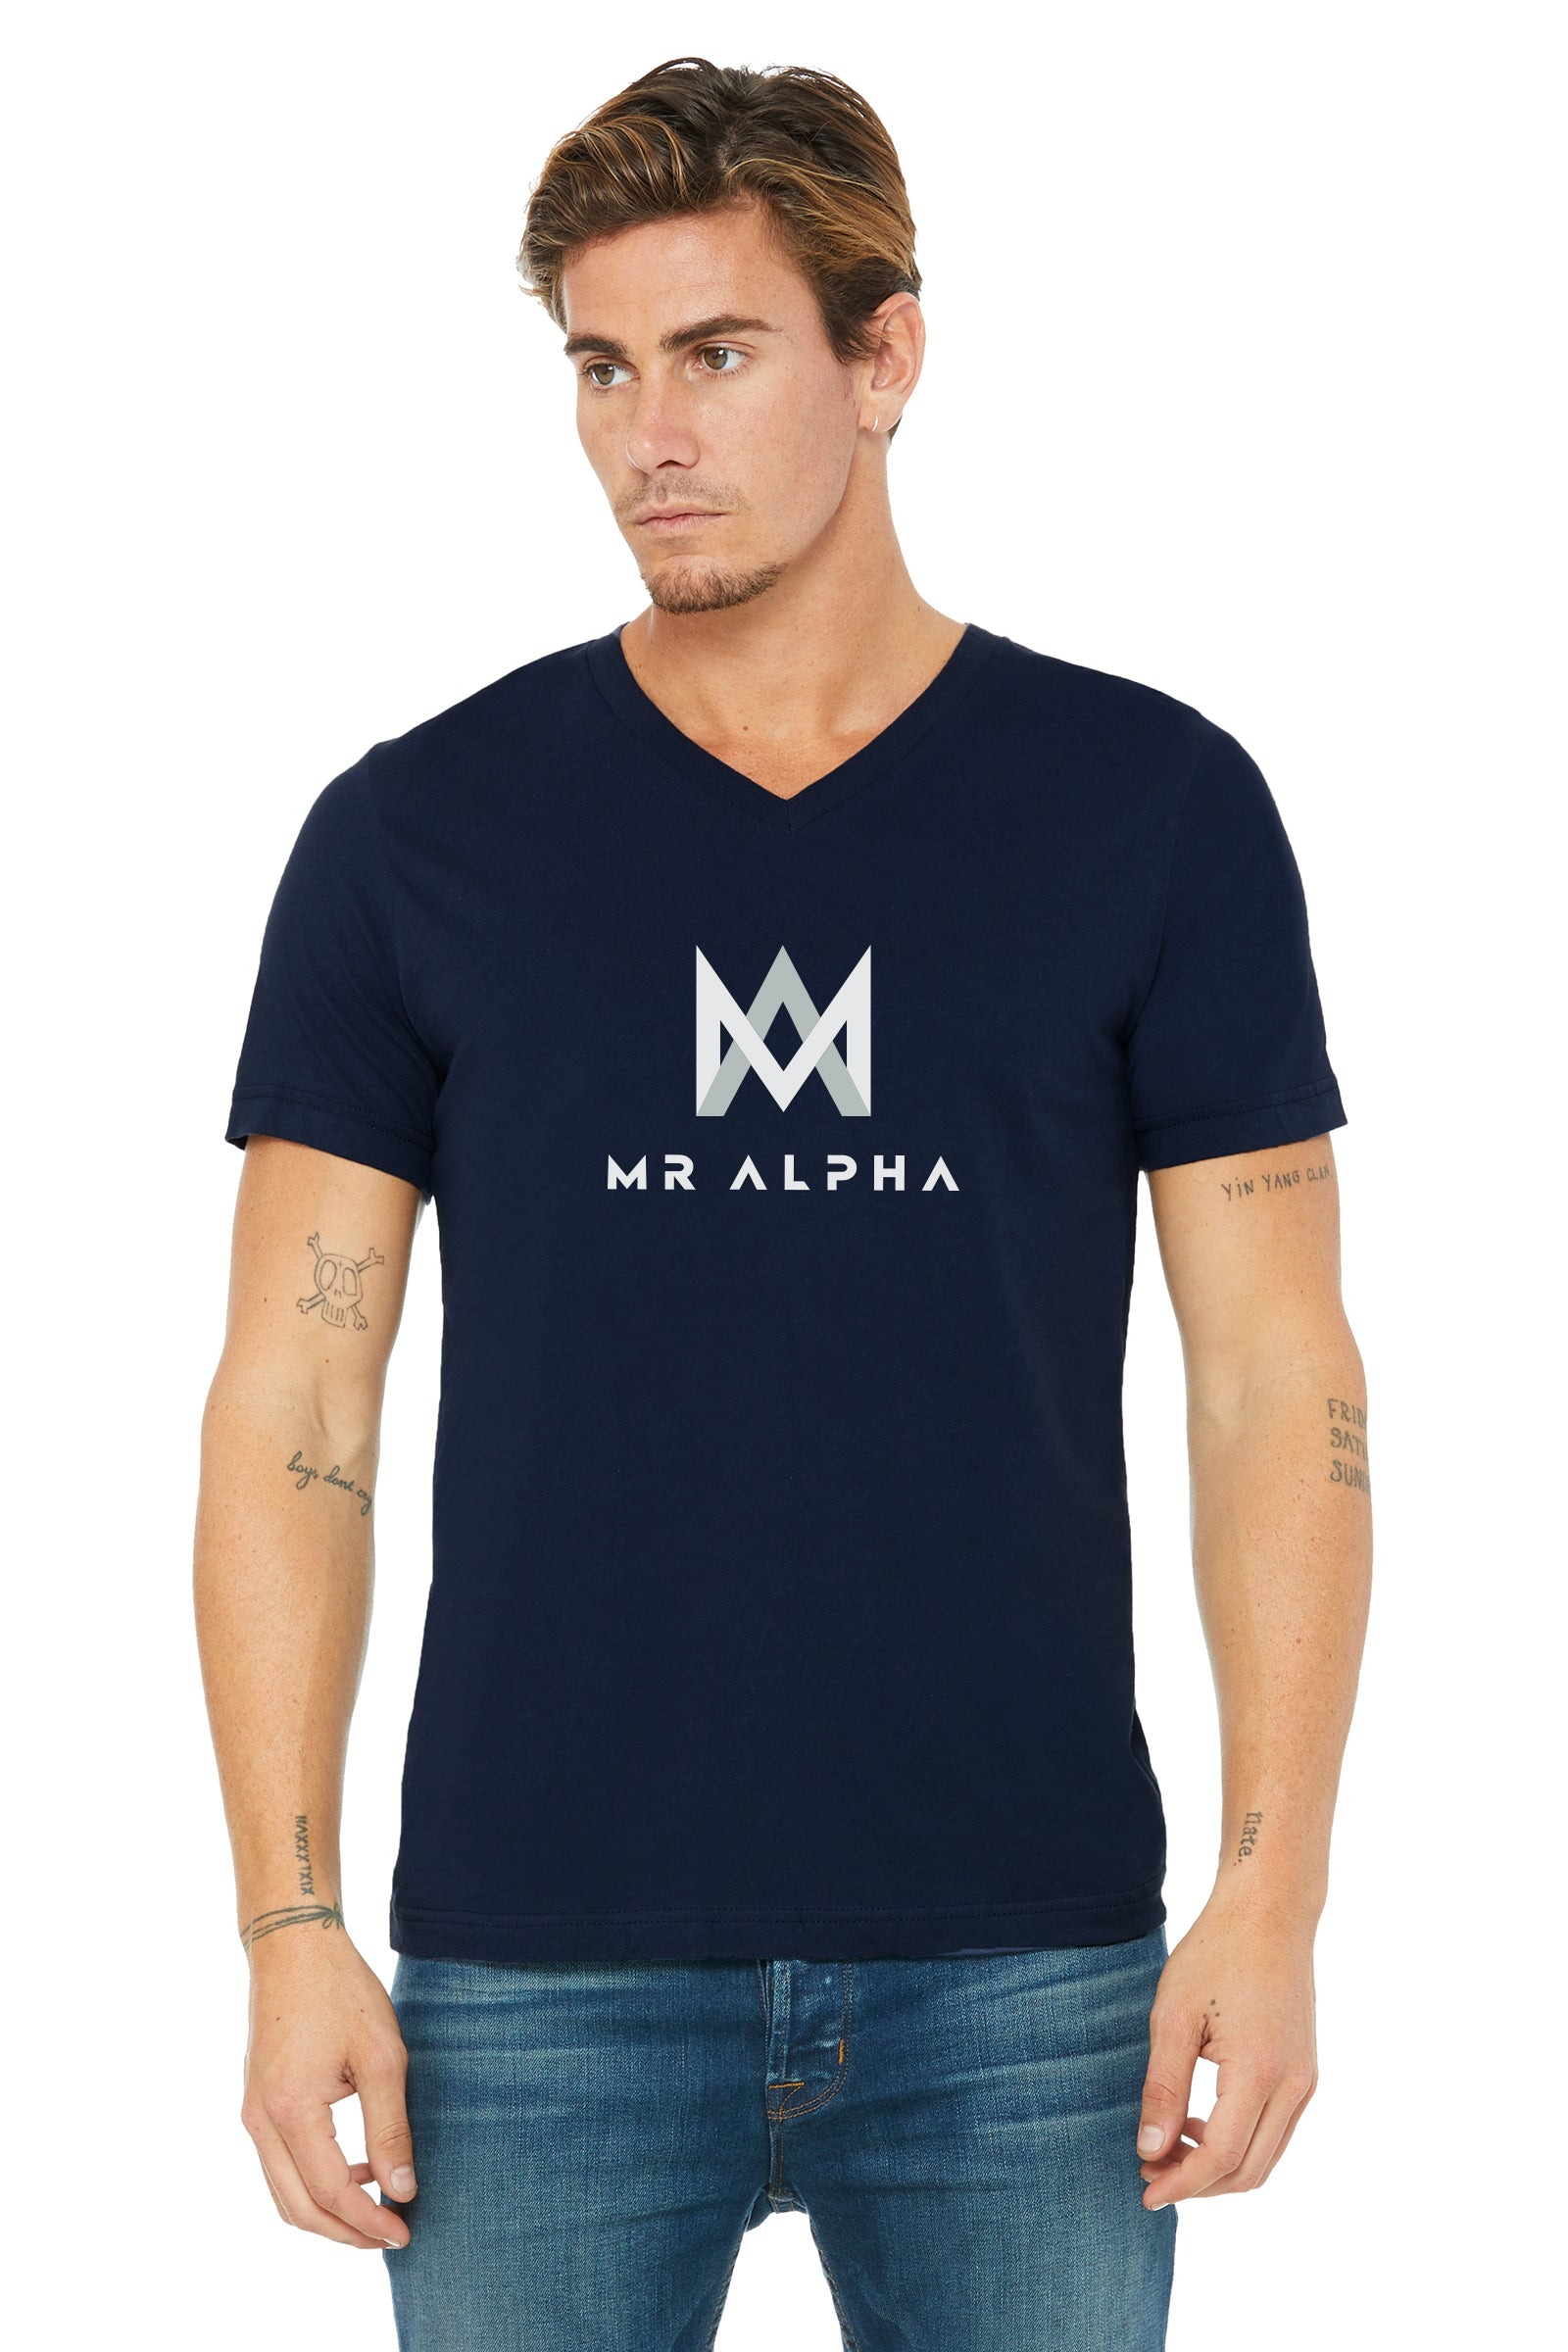 Short Sleeve Jersey V-Neck Navy